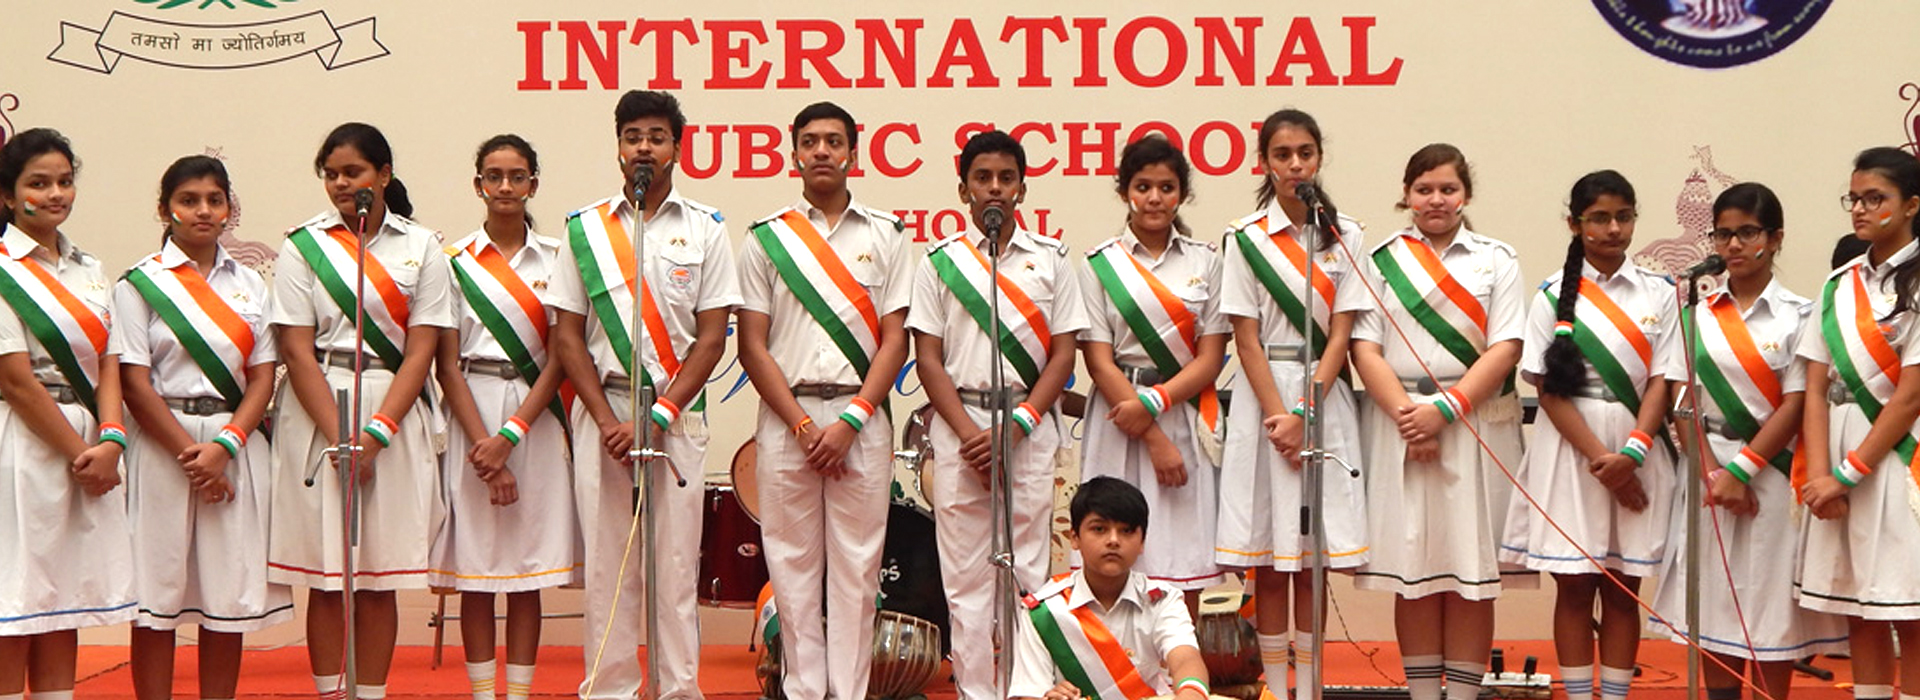 International Public School